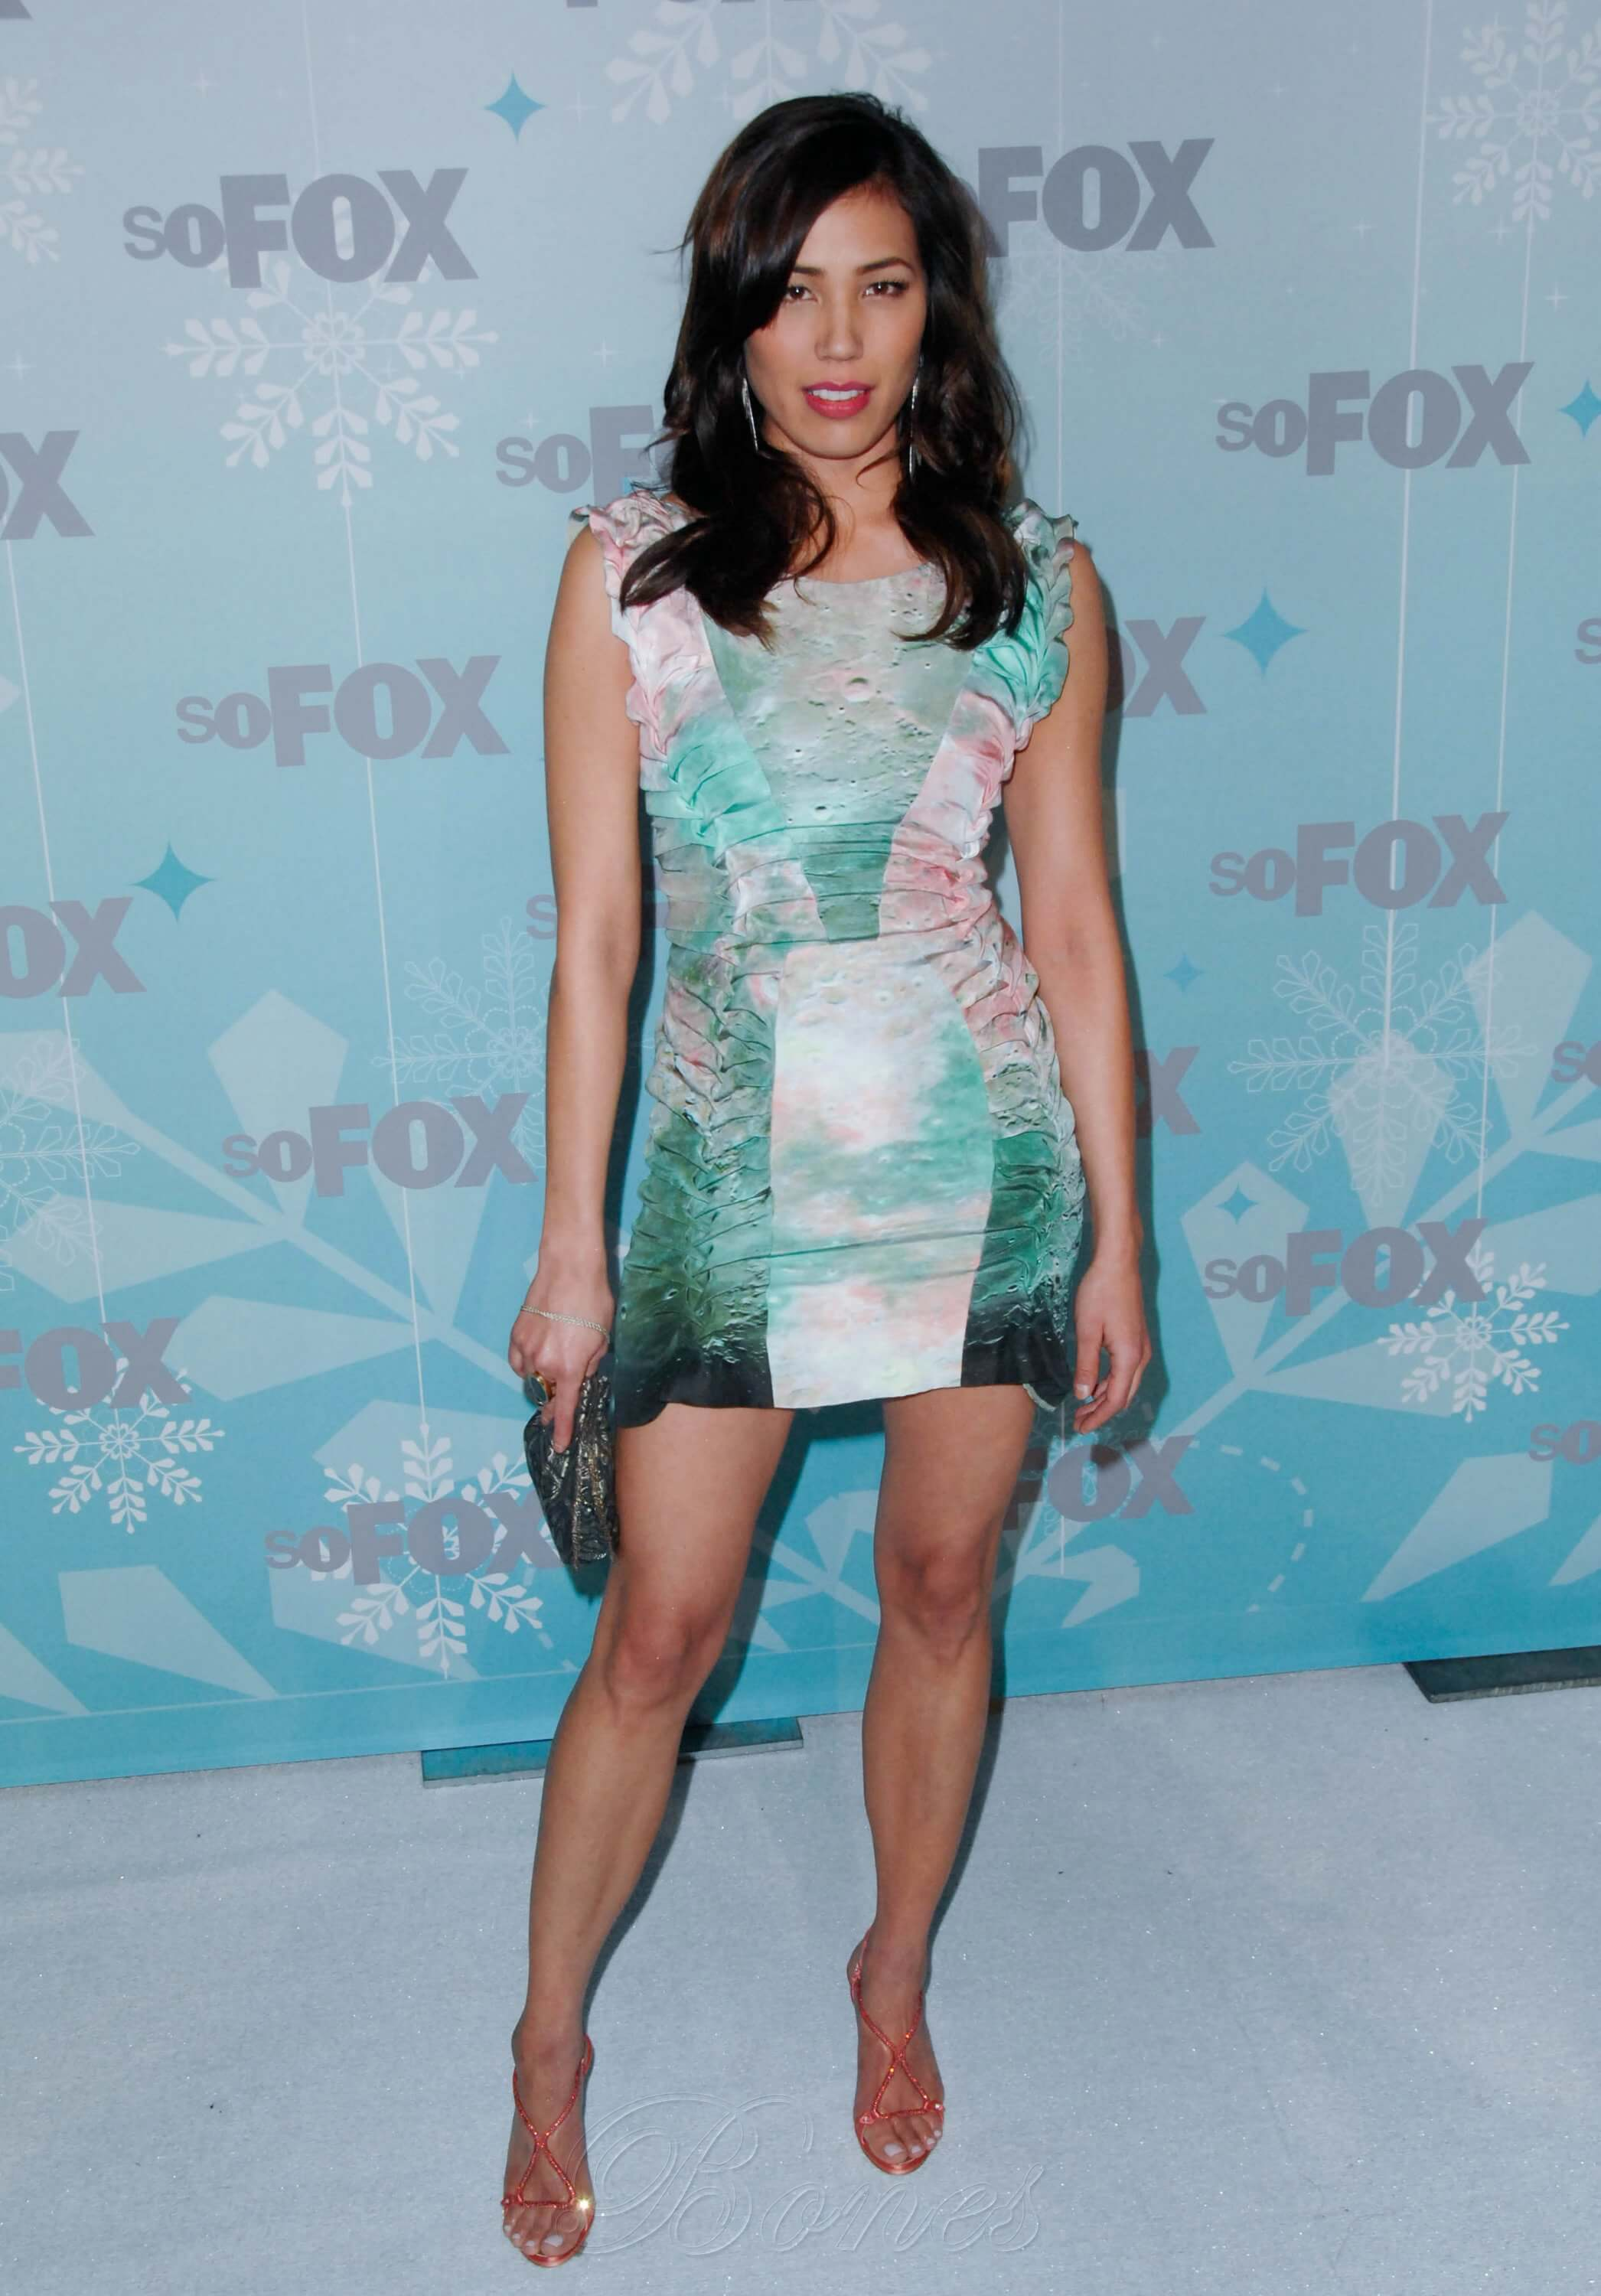 49 Hot Pictures Of Michaela Conlin That Are Too Hot To Handle